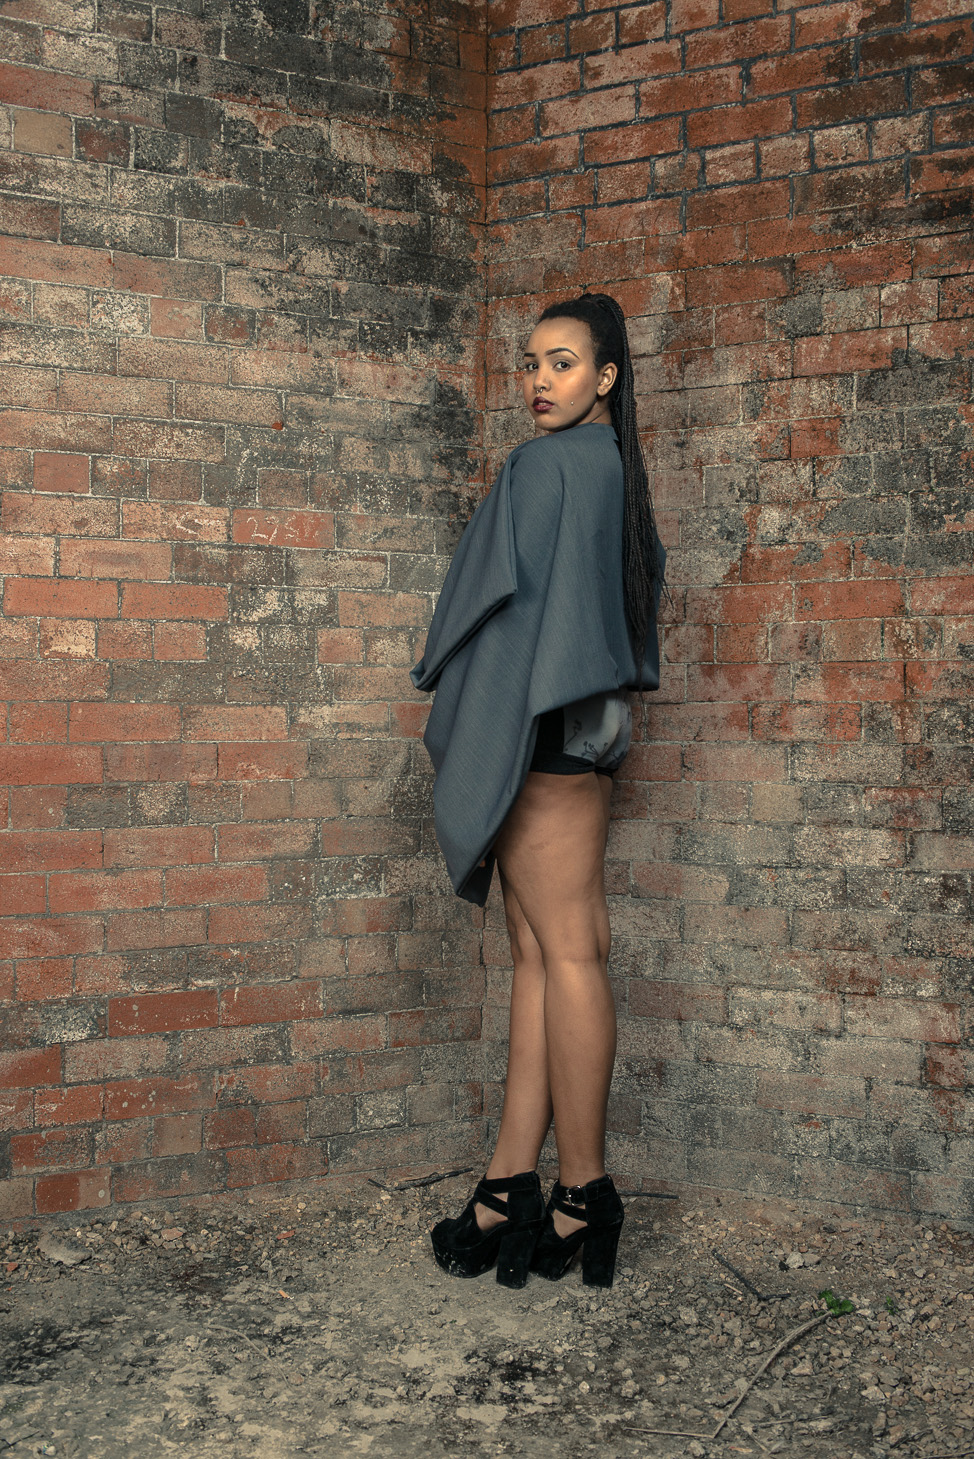 zaramia-ava-zaramiaava-leeds-fashion-designer-ethical-sustainable-tailored-minimalist-cape-versatile-drape-grey-bodysuit-black-belt-wrap-cowl-styling-womenswear-models-photoshoot-location-21